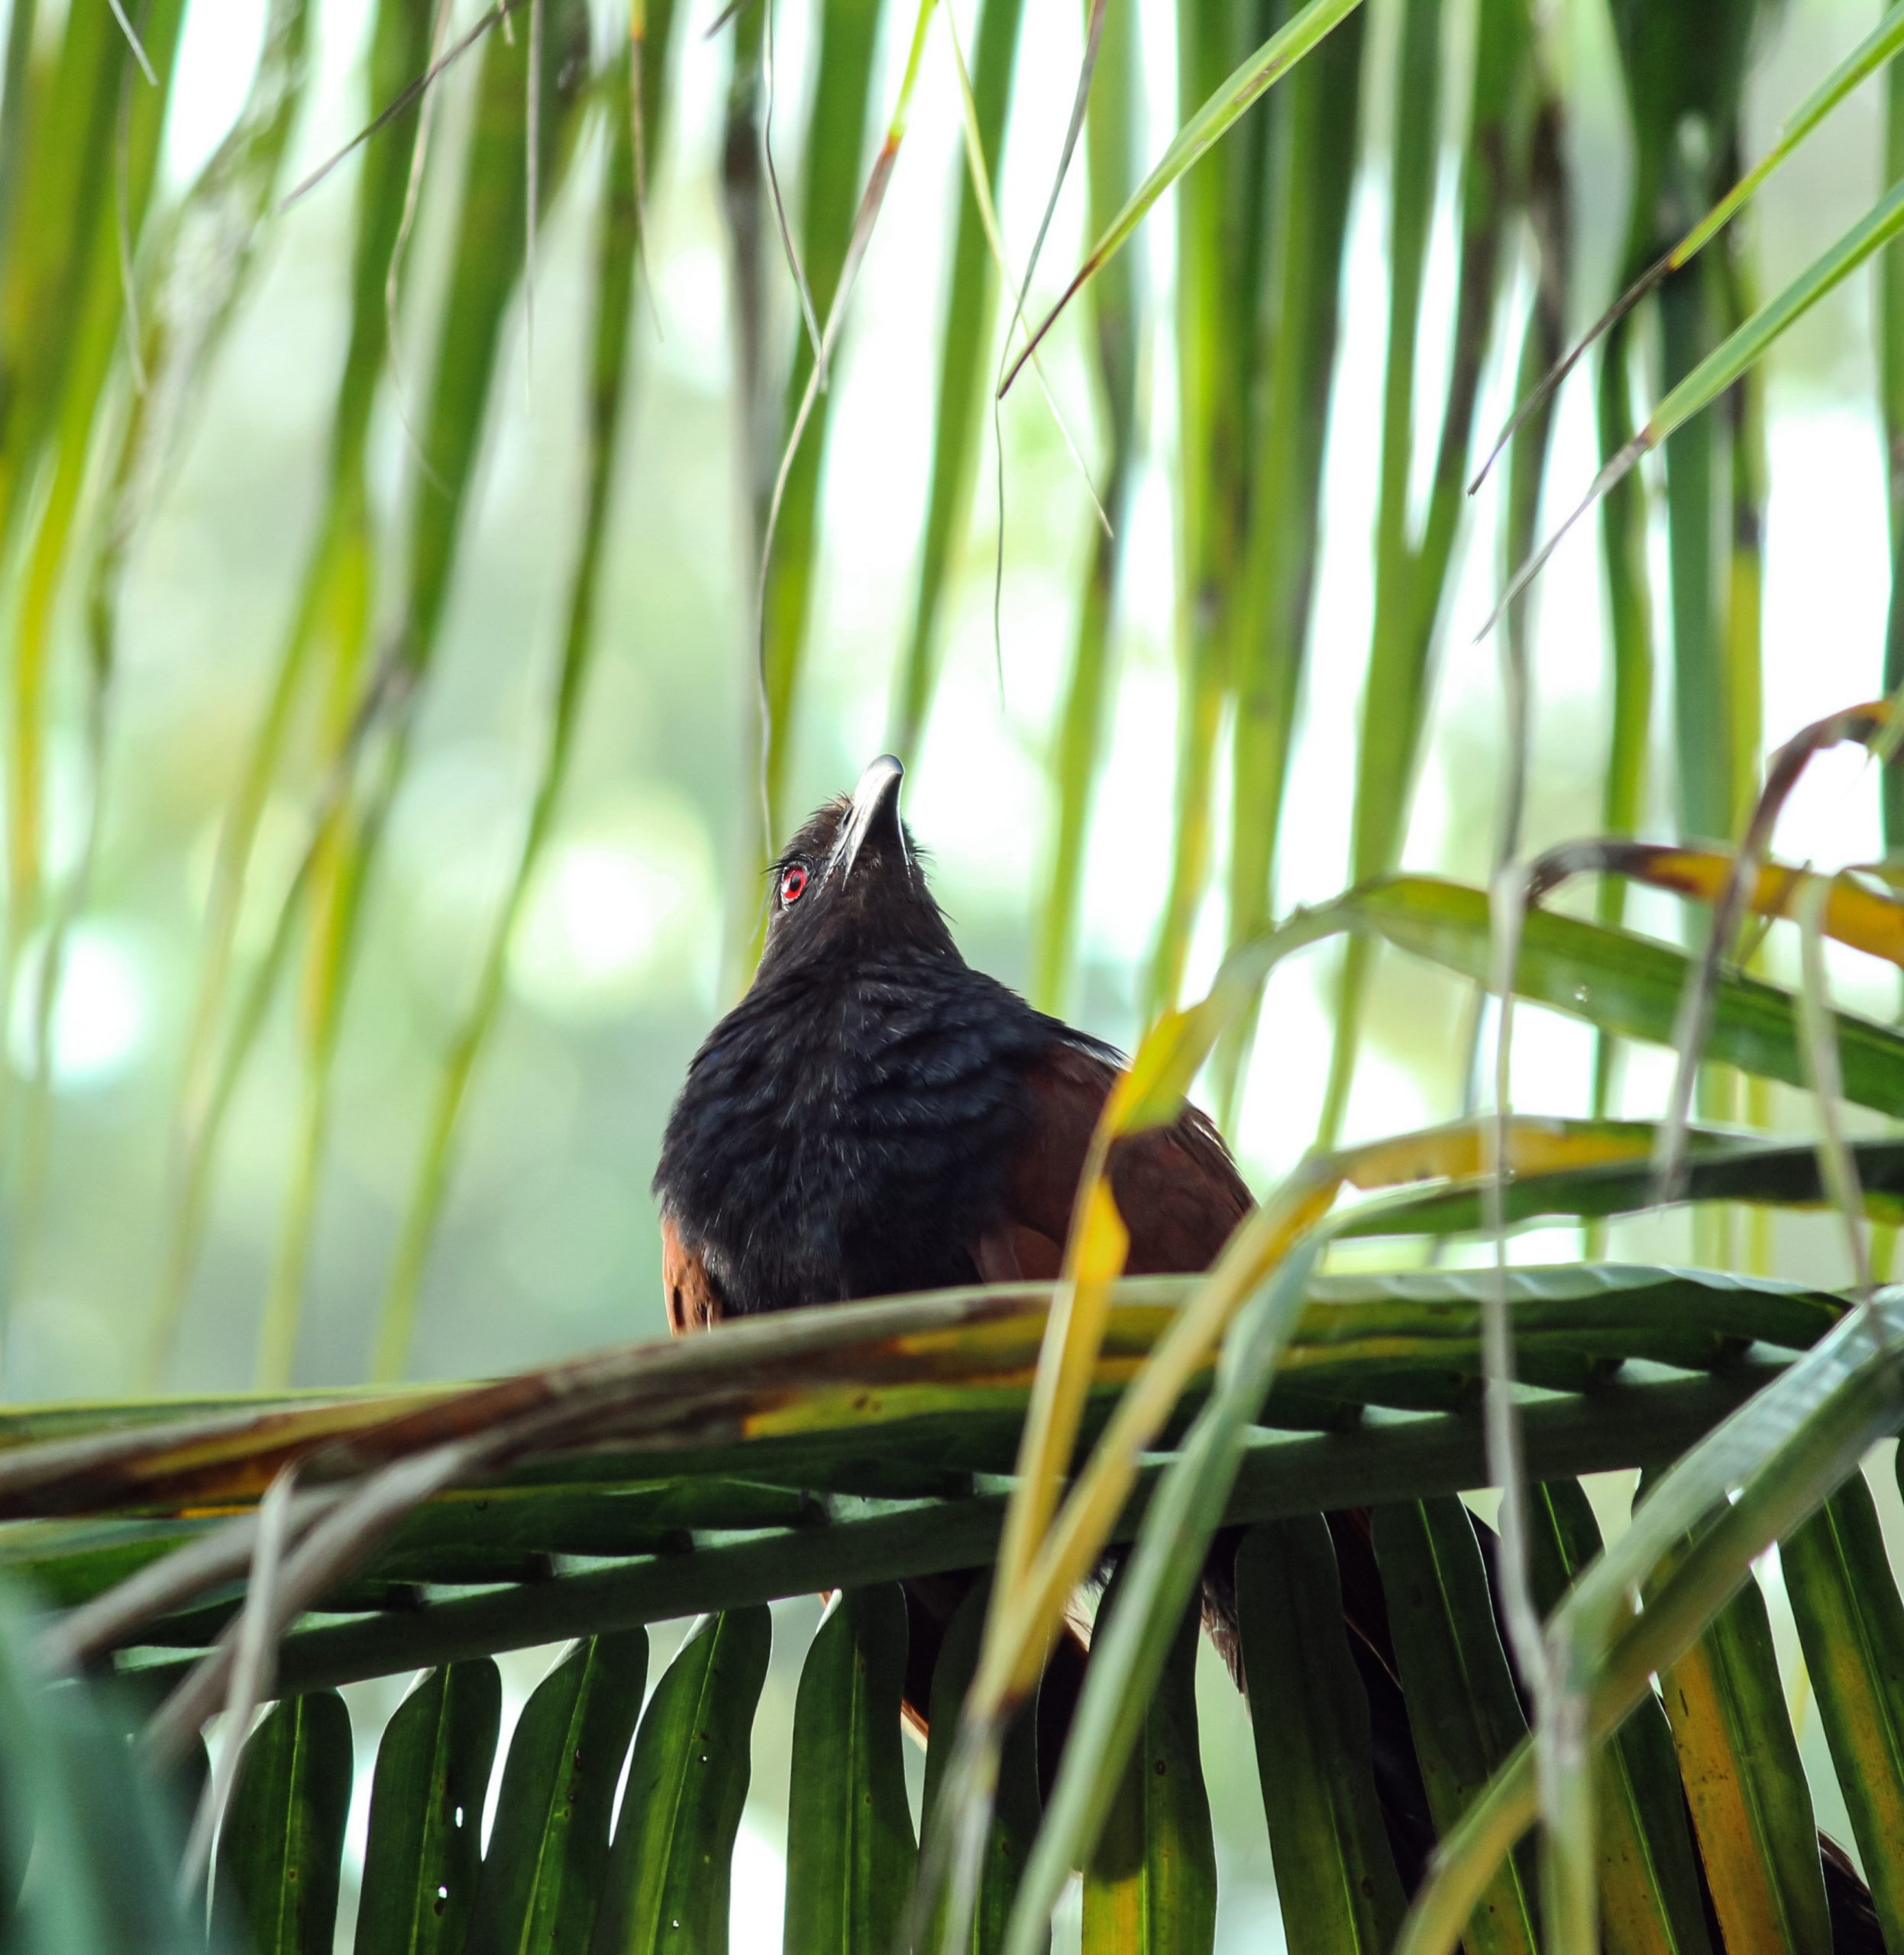 Greater coucal bird on coconut tree